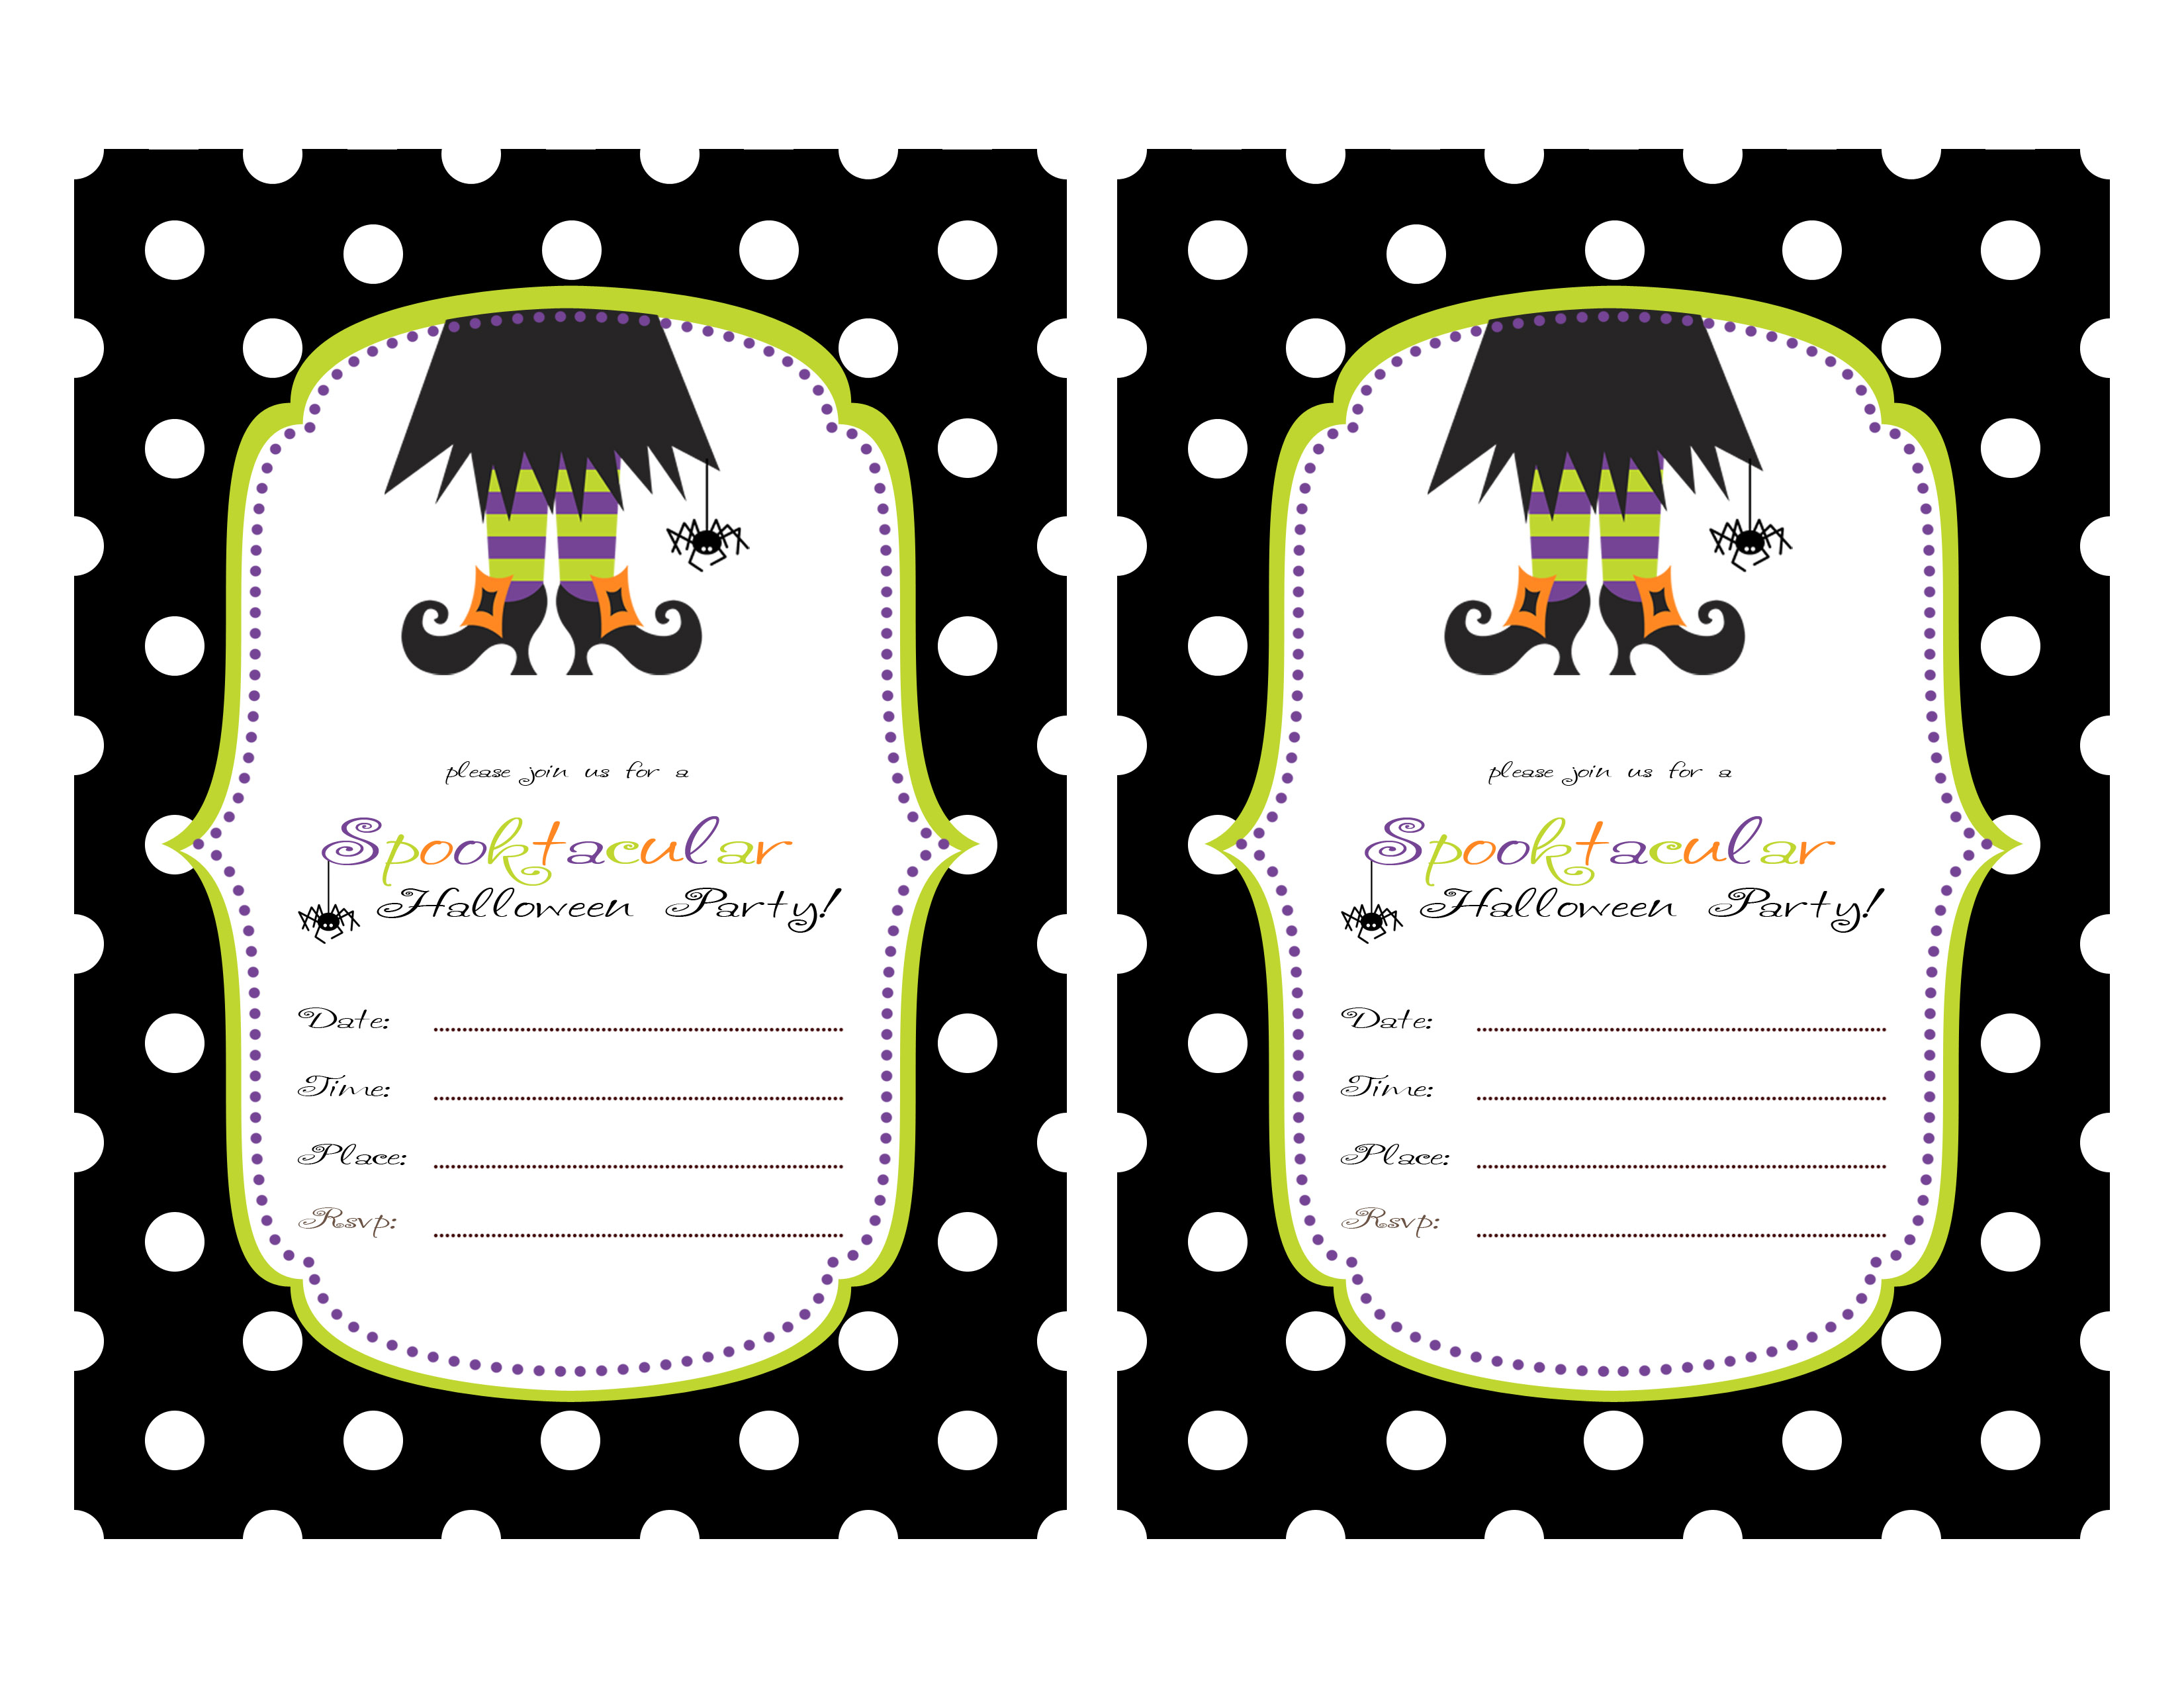 Printable Halloween Party Invitations For Kids 844 Kids Birthday - Free Printable Halloween Party Invitations